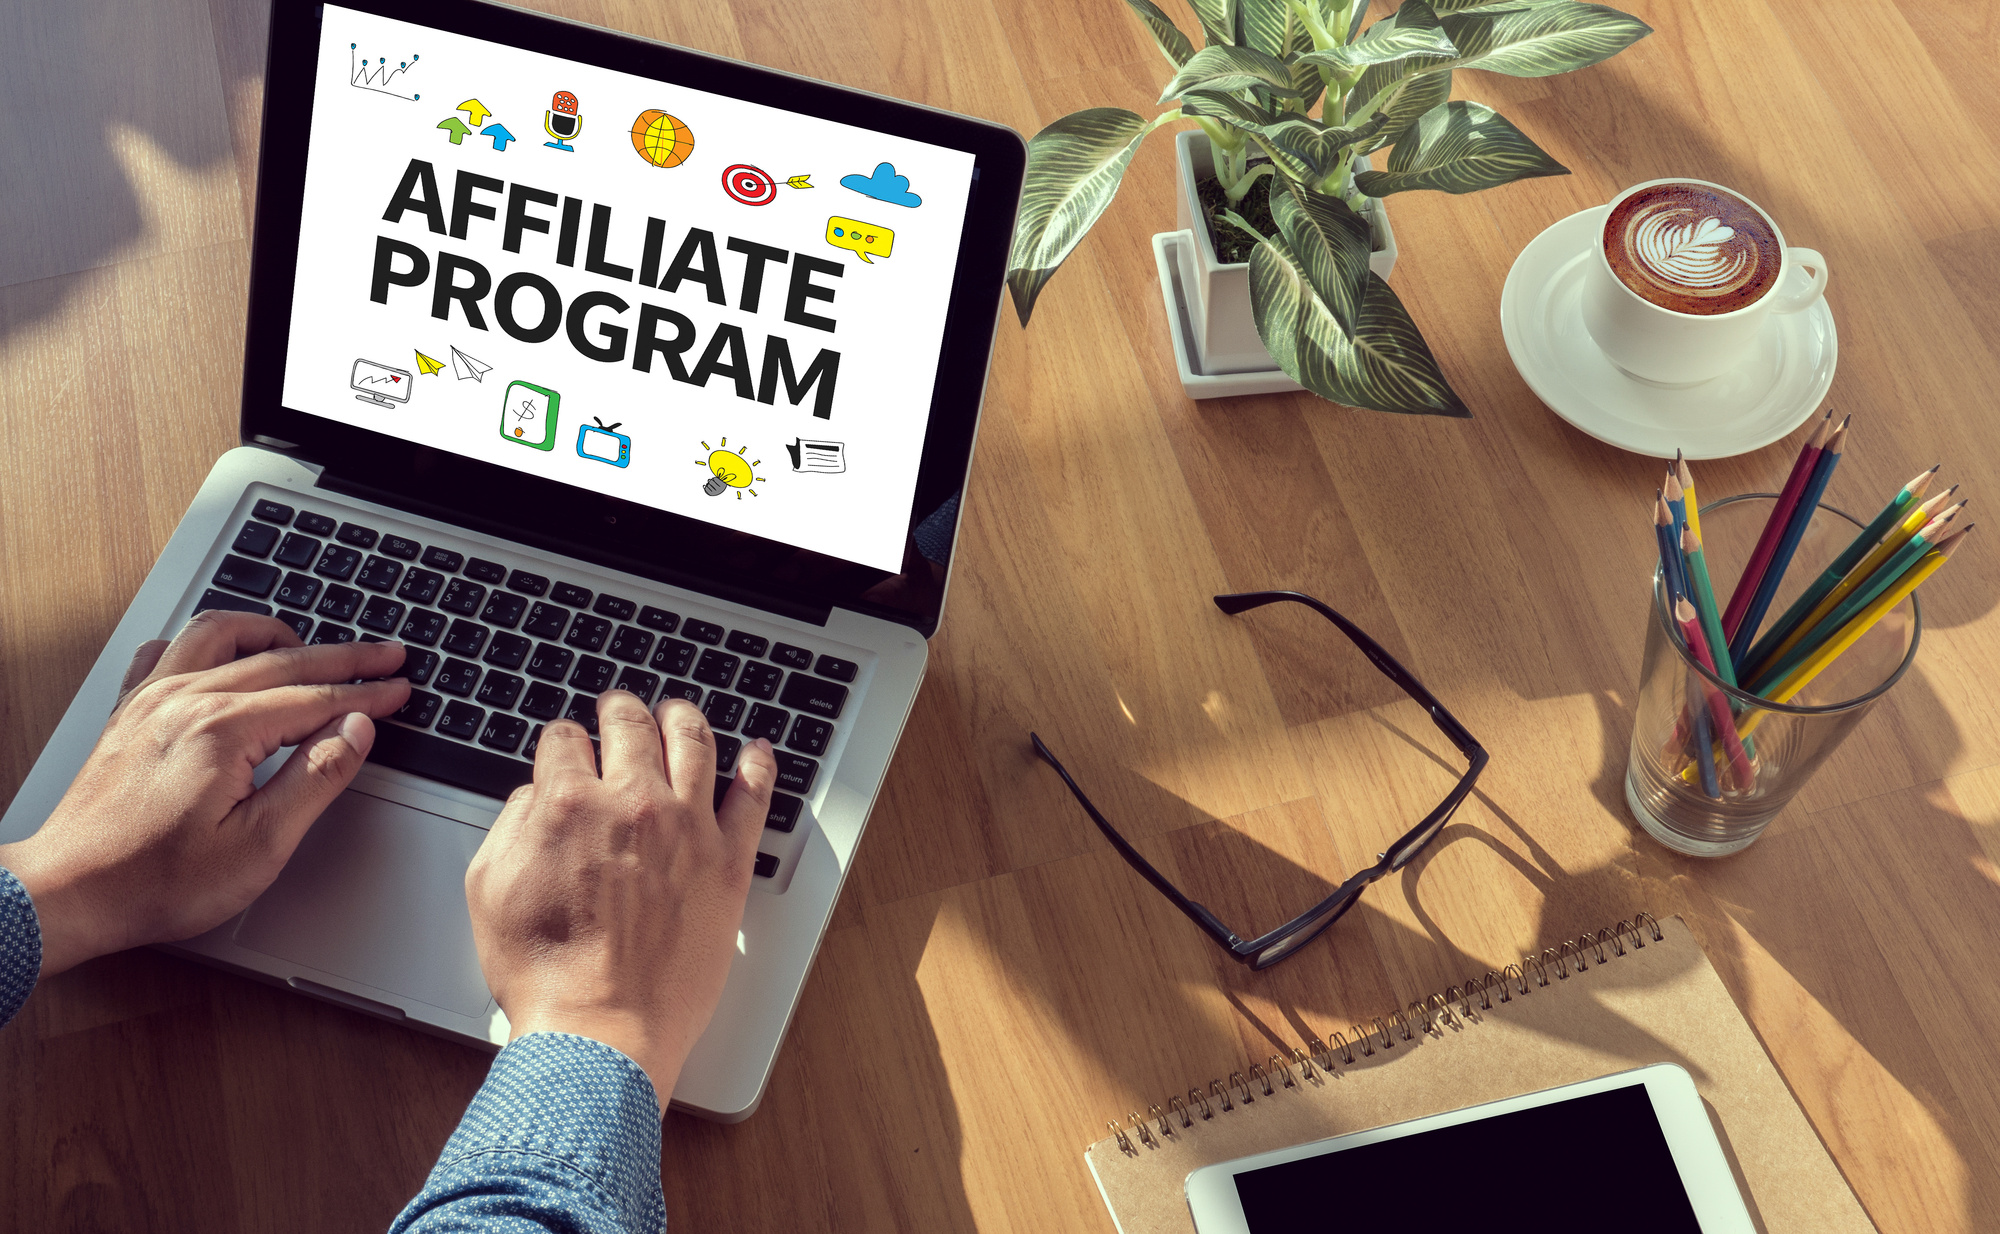 The Complete Guide to Learning Affiliate Marketing